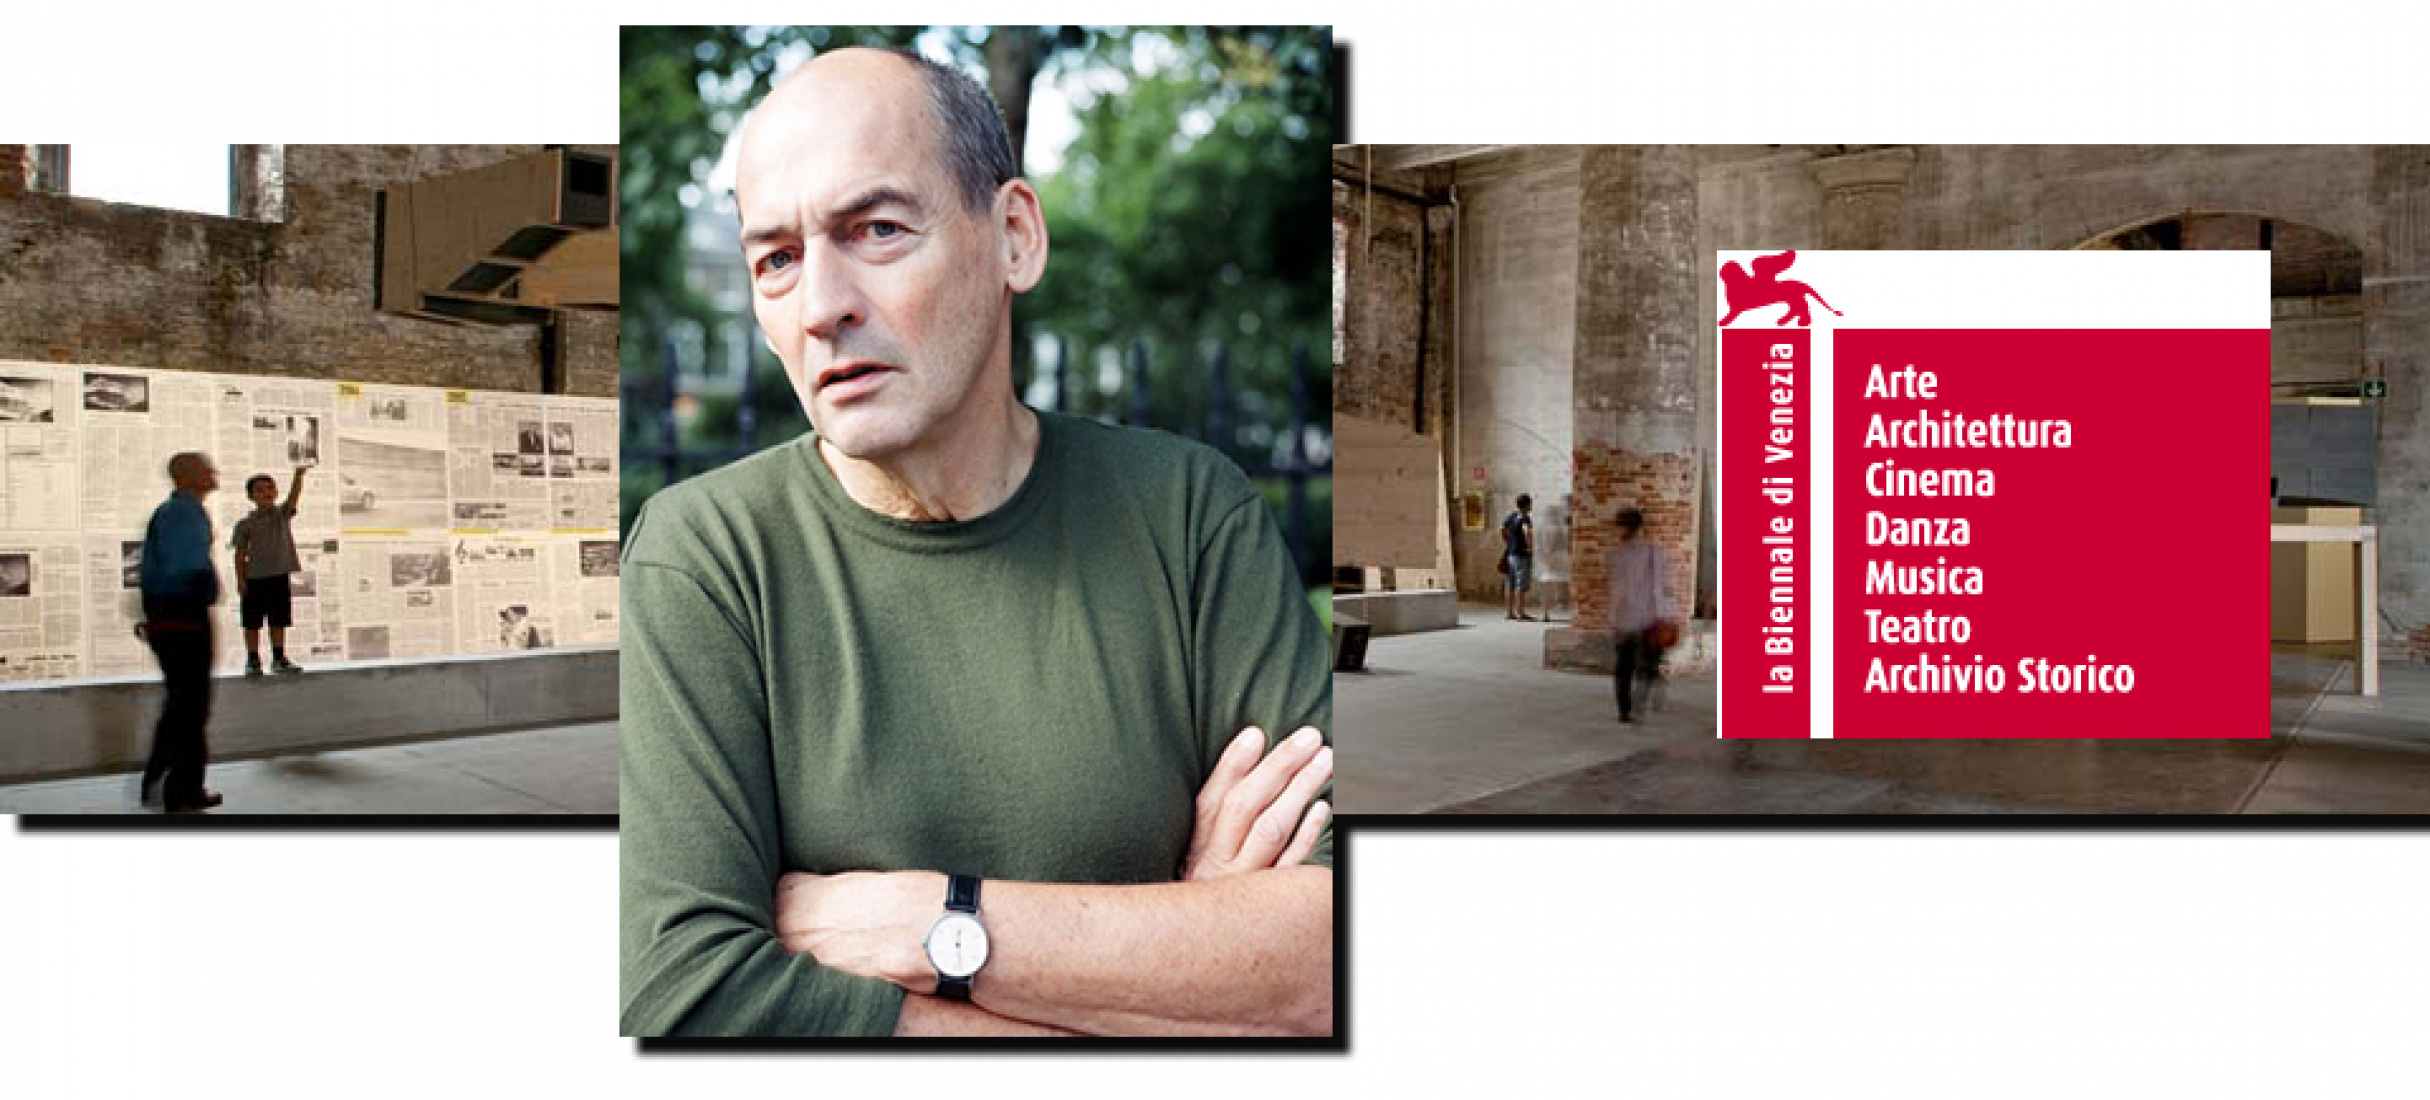 Fundamentals Rem Koolhaas announces the issue for the Venice Biennale 2014